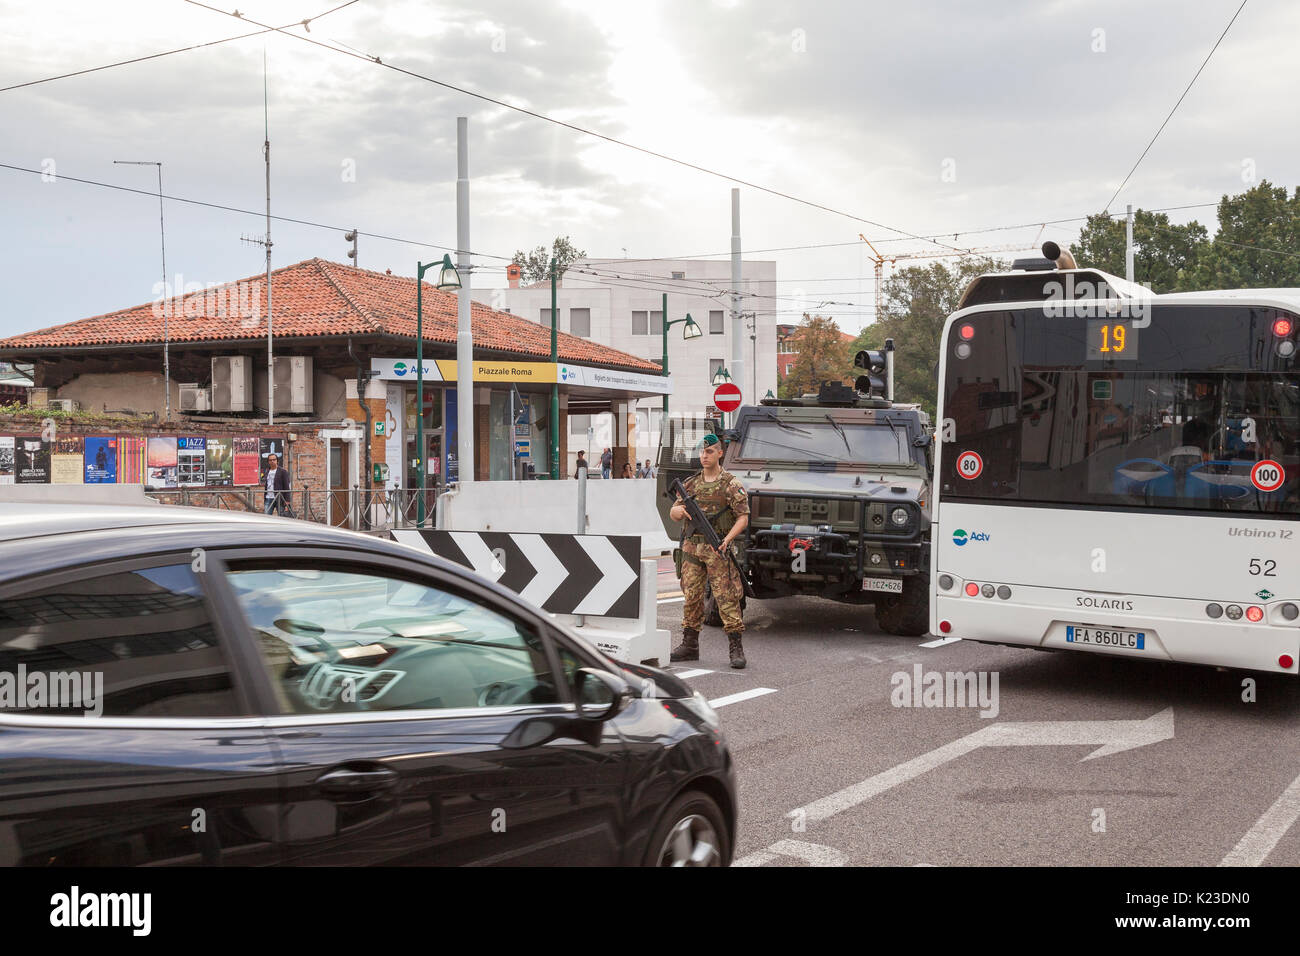 Venice, Veneto, Italy. 28th Aug, 2017. Anti-terror concrete barriers and police presence in Piazzale Roma ahead of the start of the Venice Film Festival. This is the first day after completion of the installation of the barriers to check the viabilty of traffic flow and pedestrians. An armoured car and soldier were in place on Ponte della Liberta blocking one lane watching traffic. The barriers are designed to block any vehicular attack. Credit: Mary Clarke/Alamy Live News - Stock Image